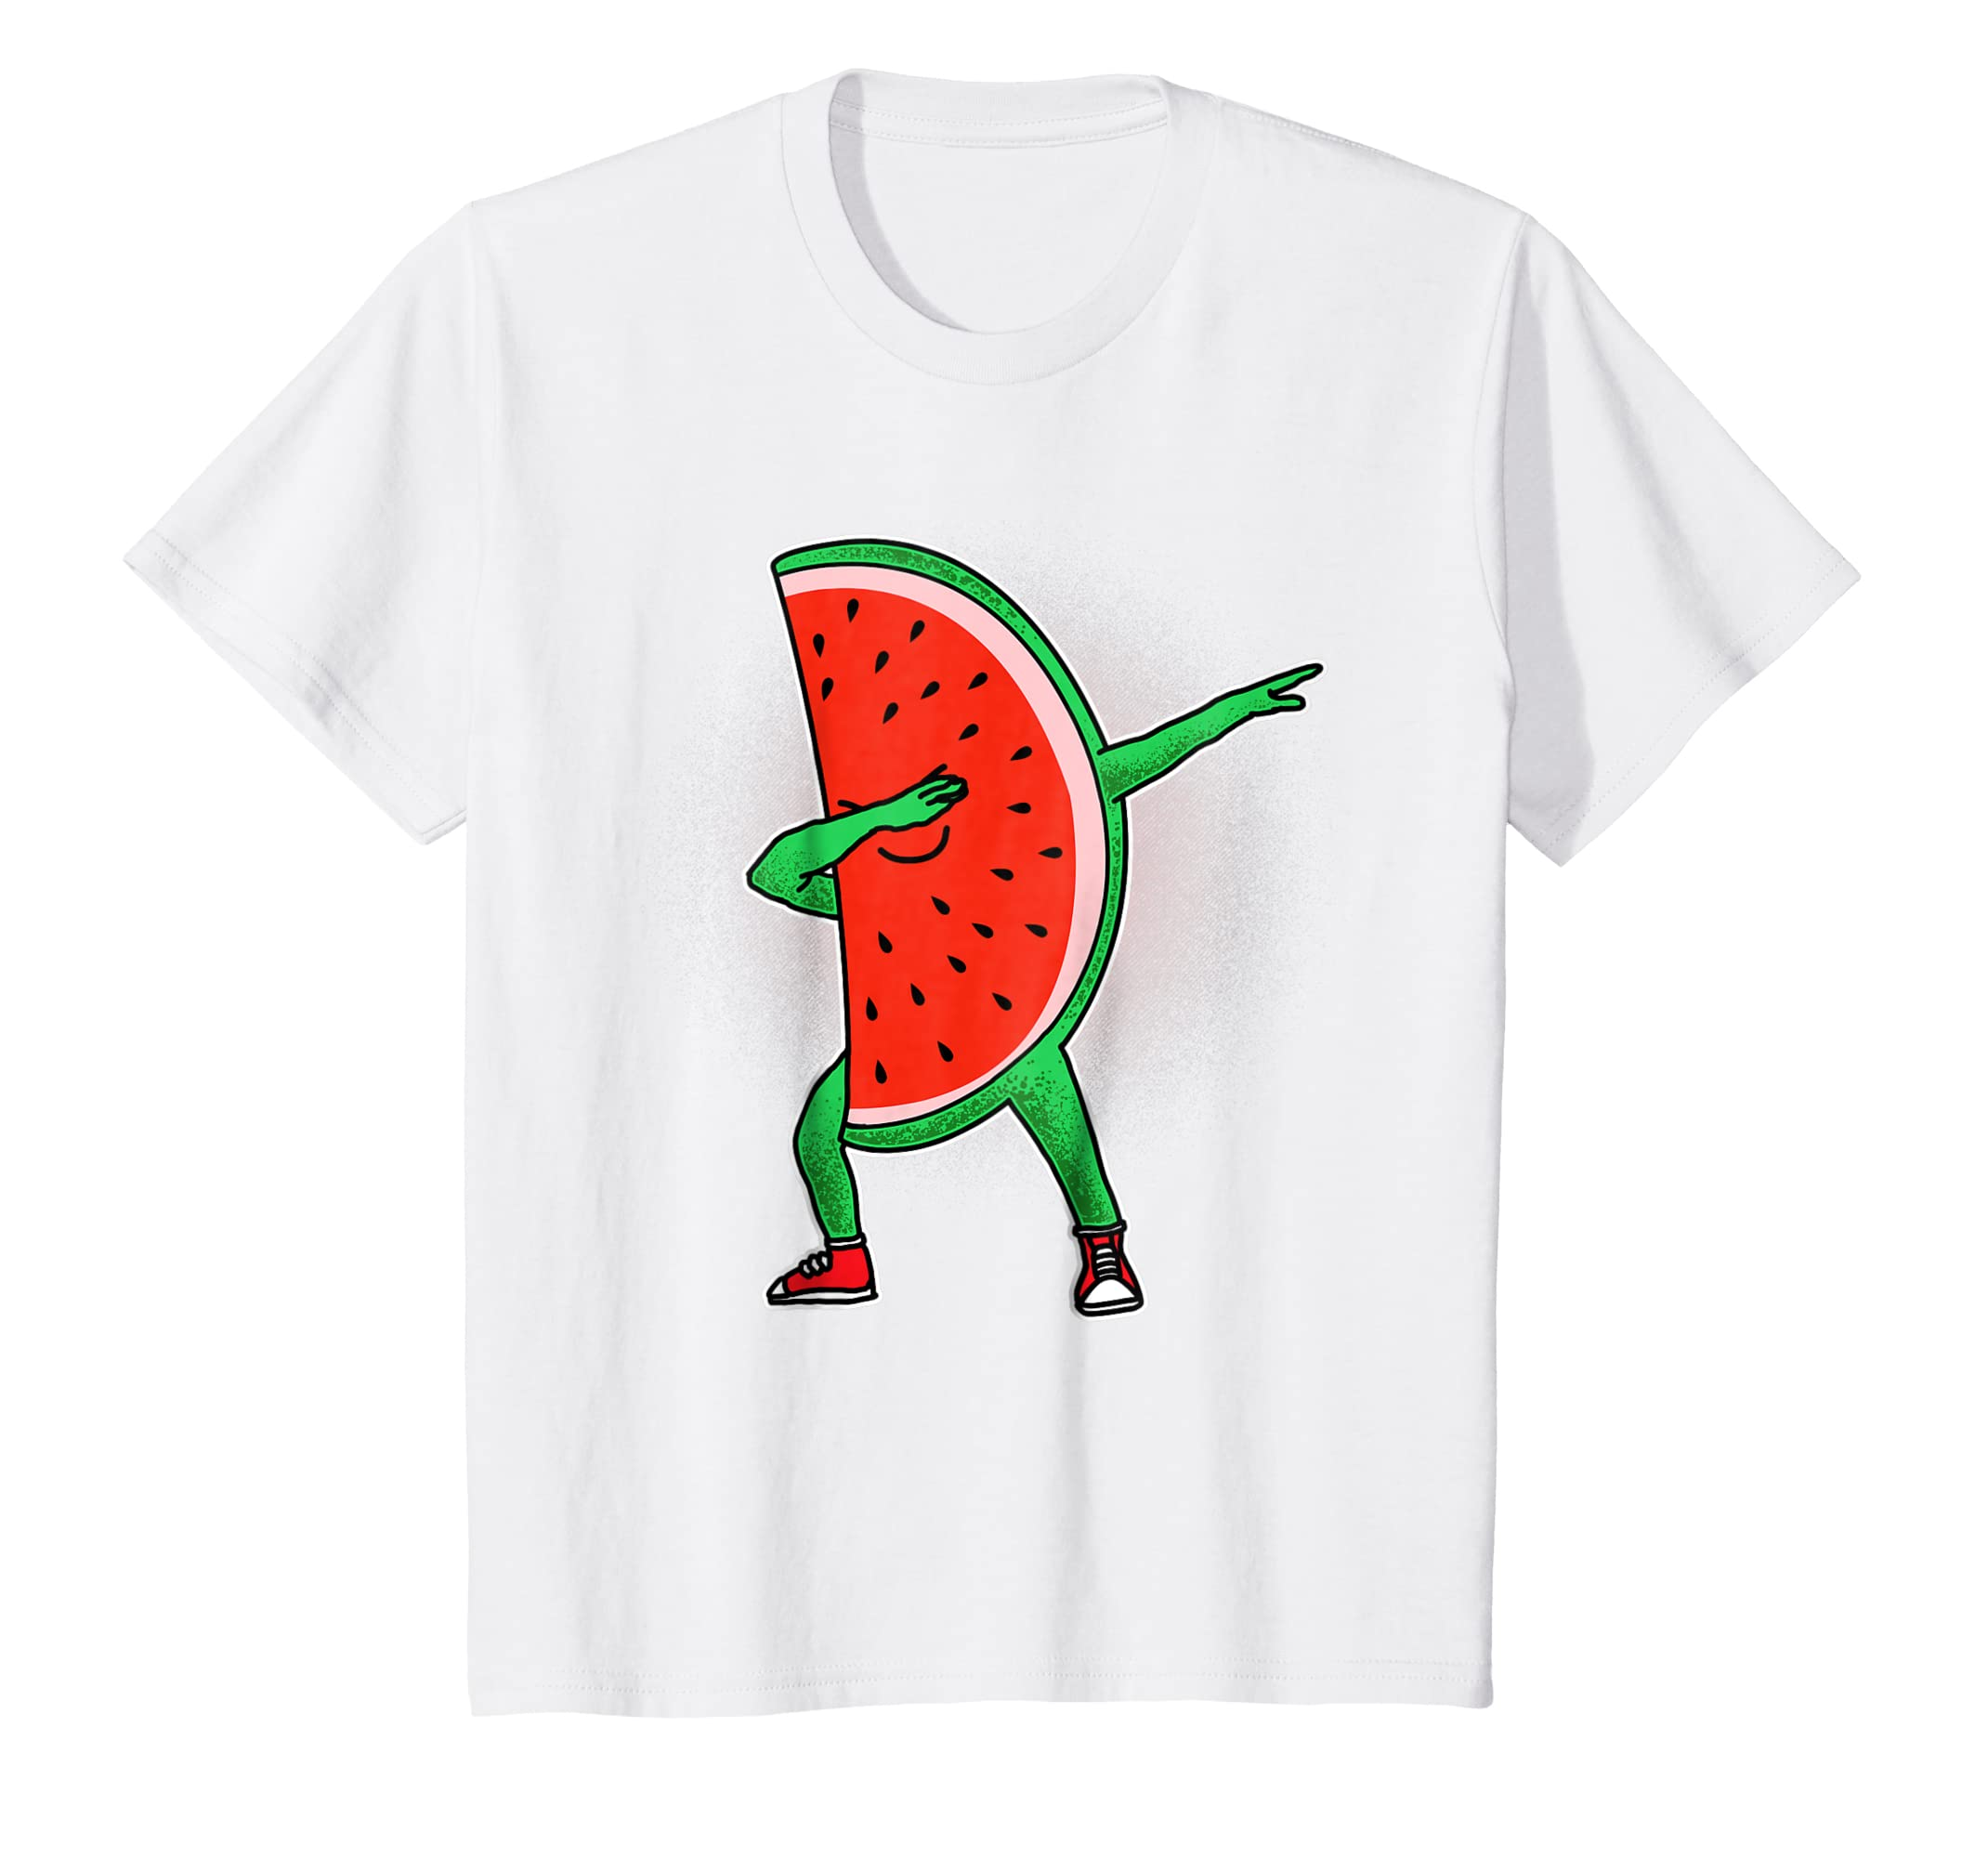 77e1f69eb Amazon.com: Funny Dabbing Watermelon Dab Shirt: Clothing